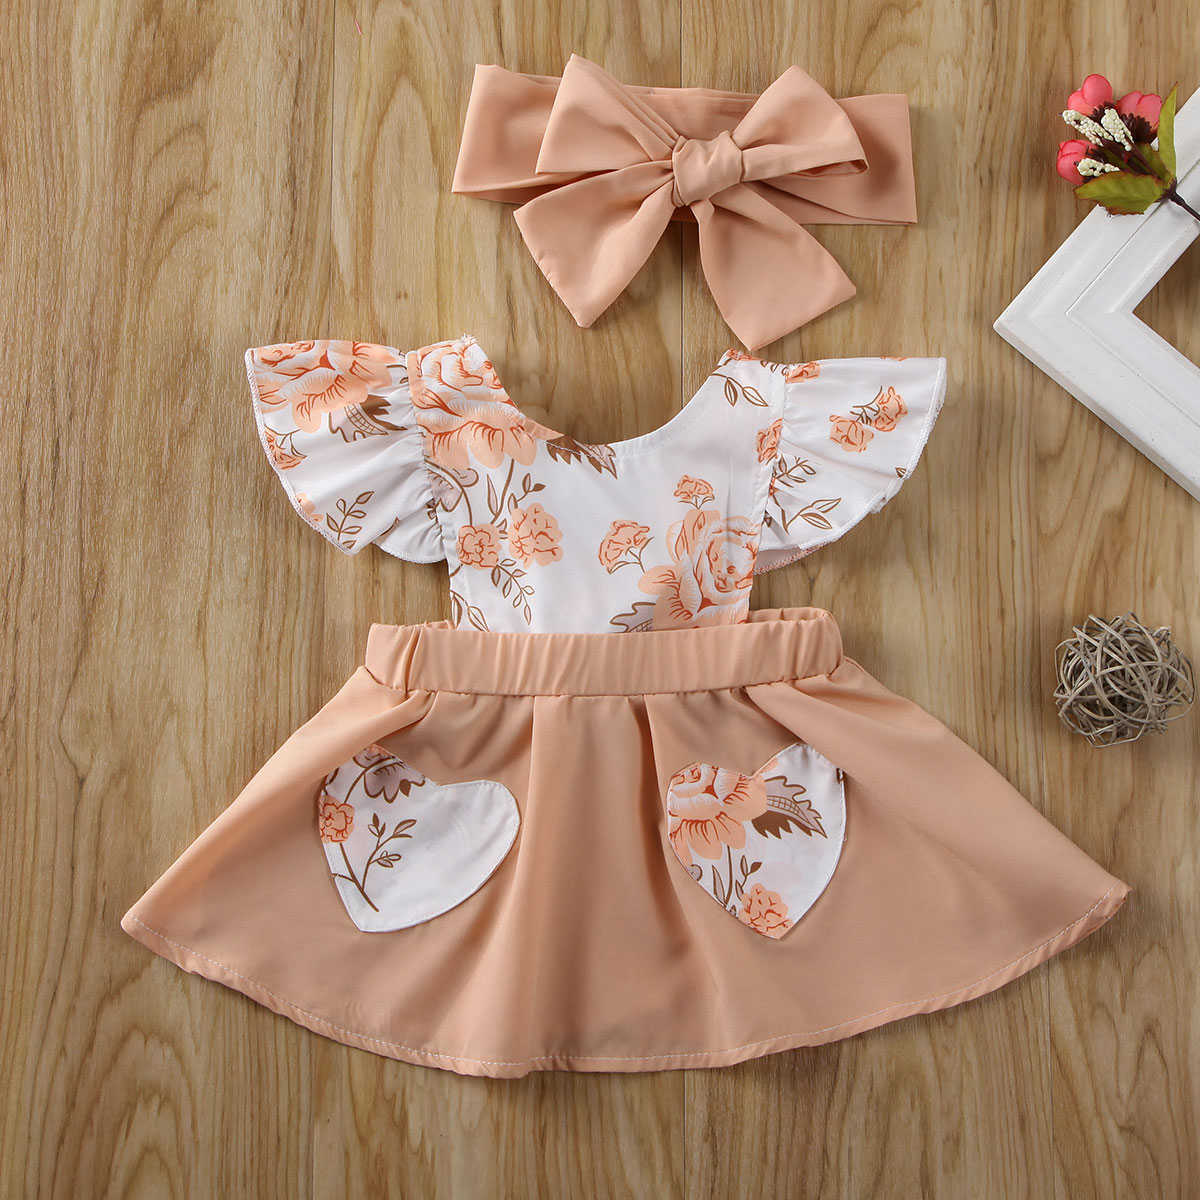 Pudcoco Newborn Baby Girl Clothes Flower Print Sleeveless Patchwork Dress Headband 2Pcs Outfits Sunsuit Clothes